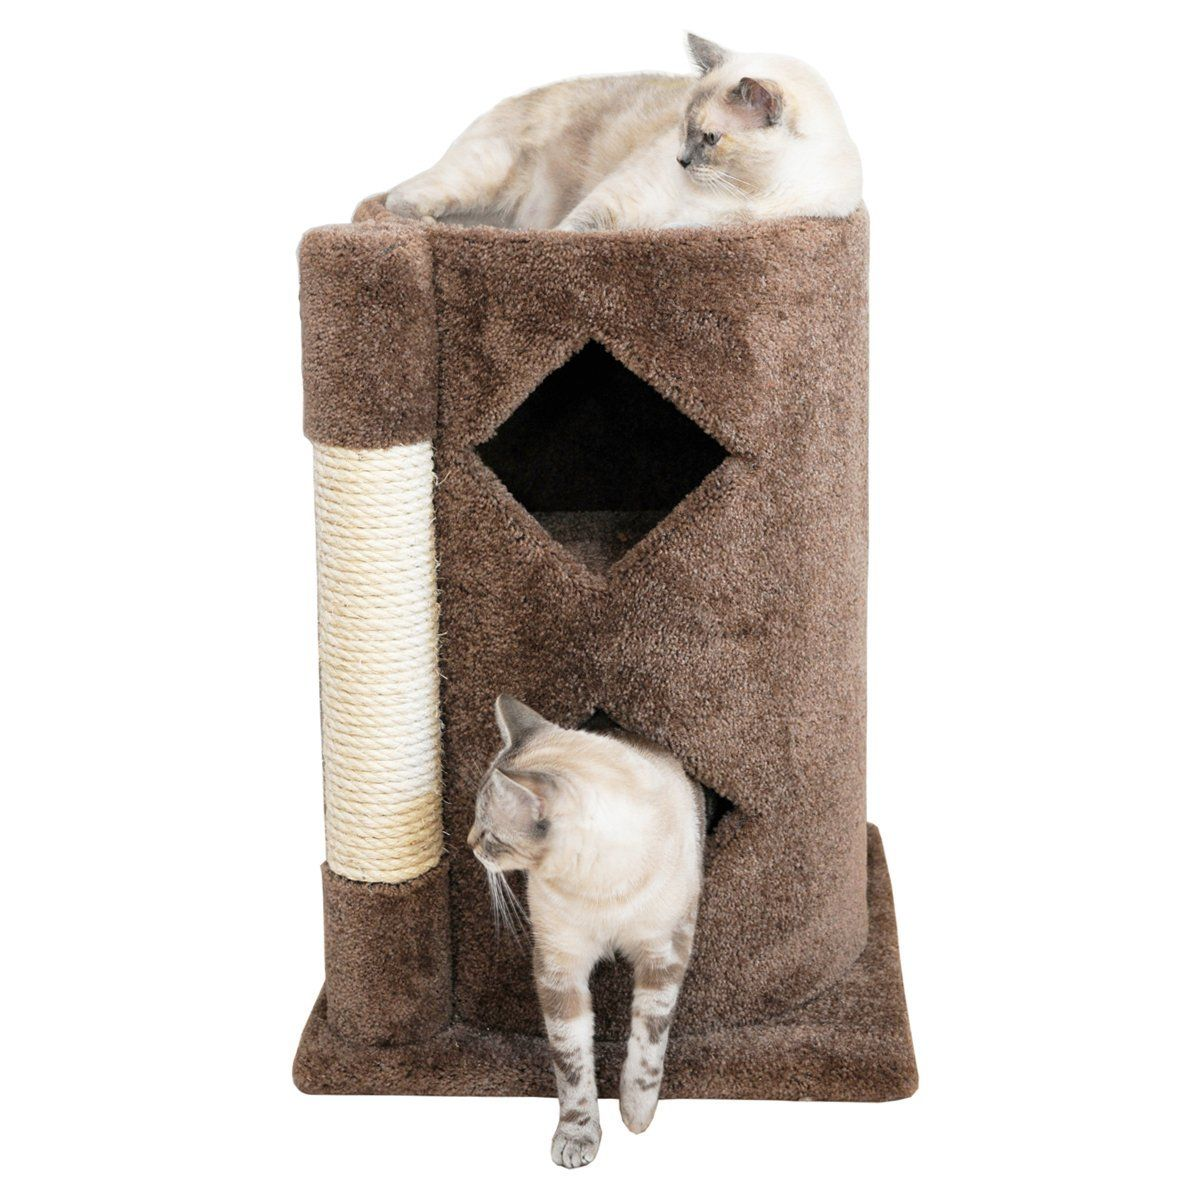 Wood Cat Condo Two Story With Sisal Brown Carpet Cats Condo Wood Cat Cat Bed Cat Condo